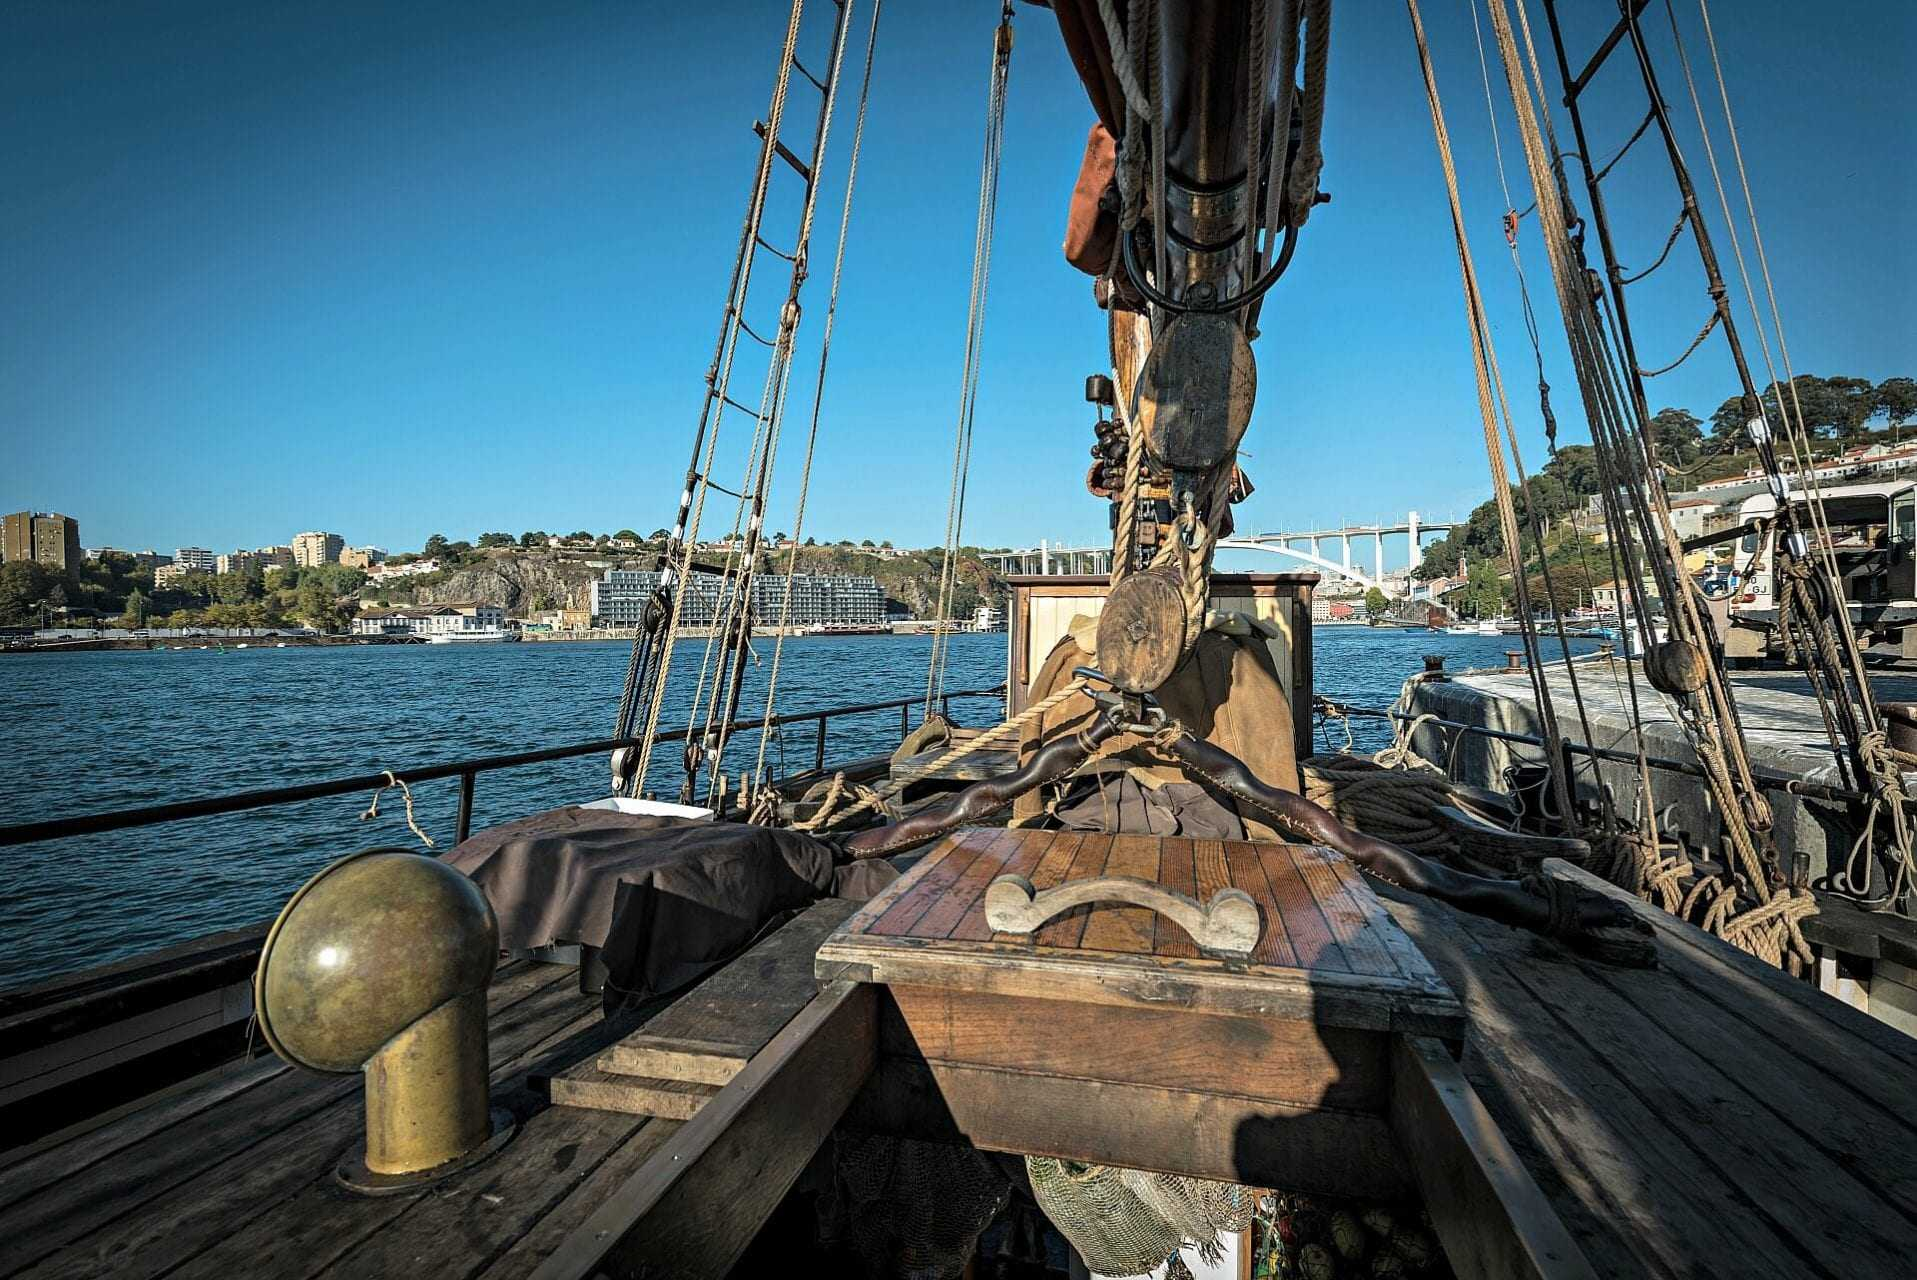 150yearold-sailboat-brings-olive-oil-from-portugal-to-britain